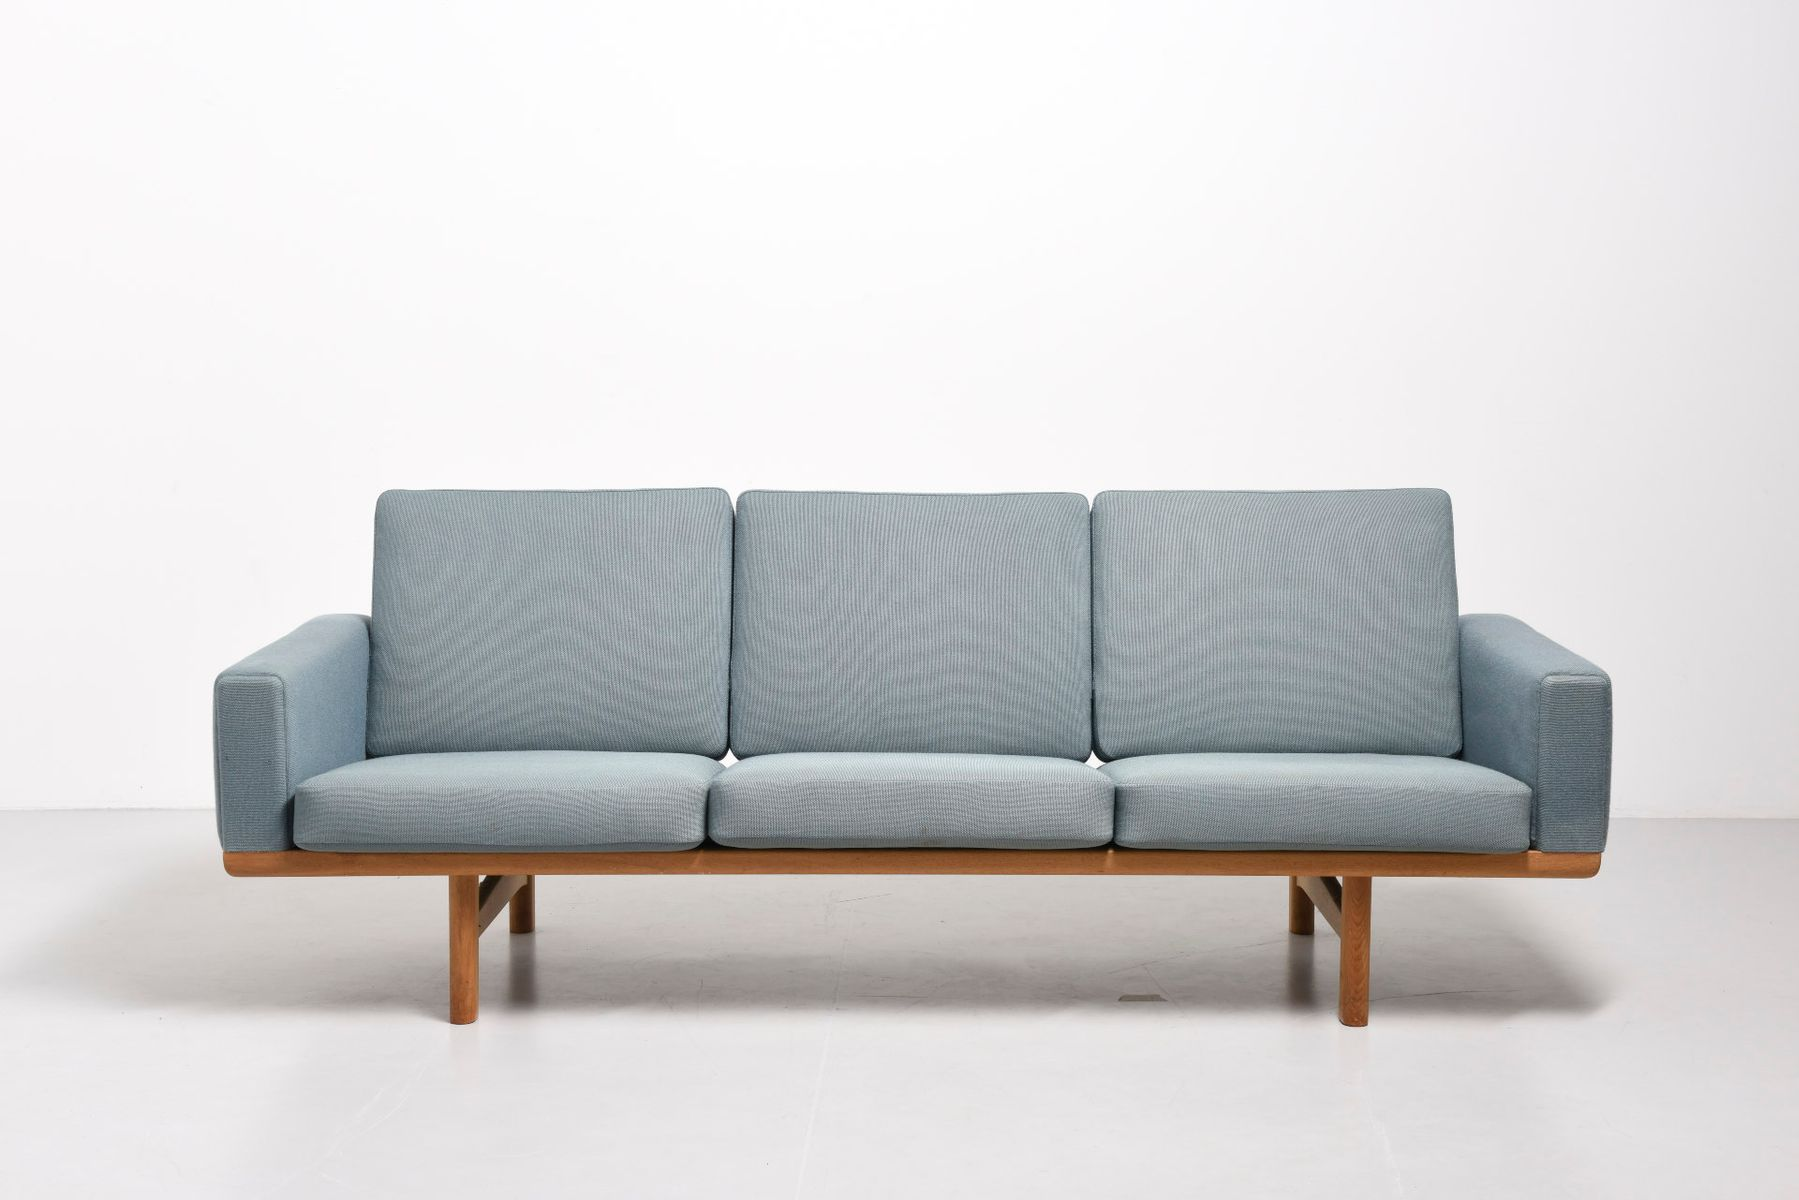 Light blue ge 236 sofa by hans j wegner for getama for for Blue sofas for sale